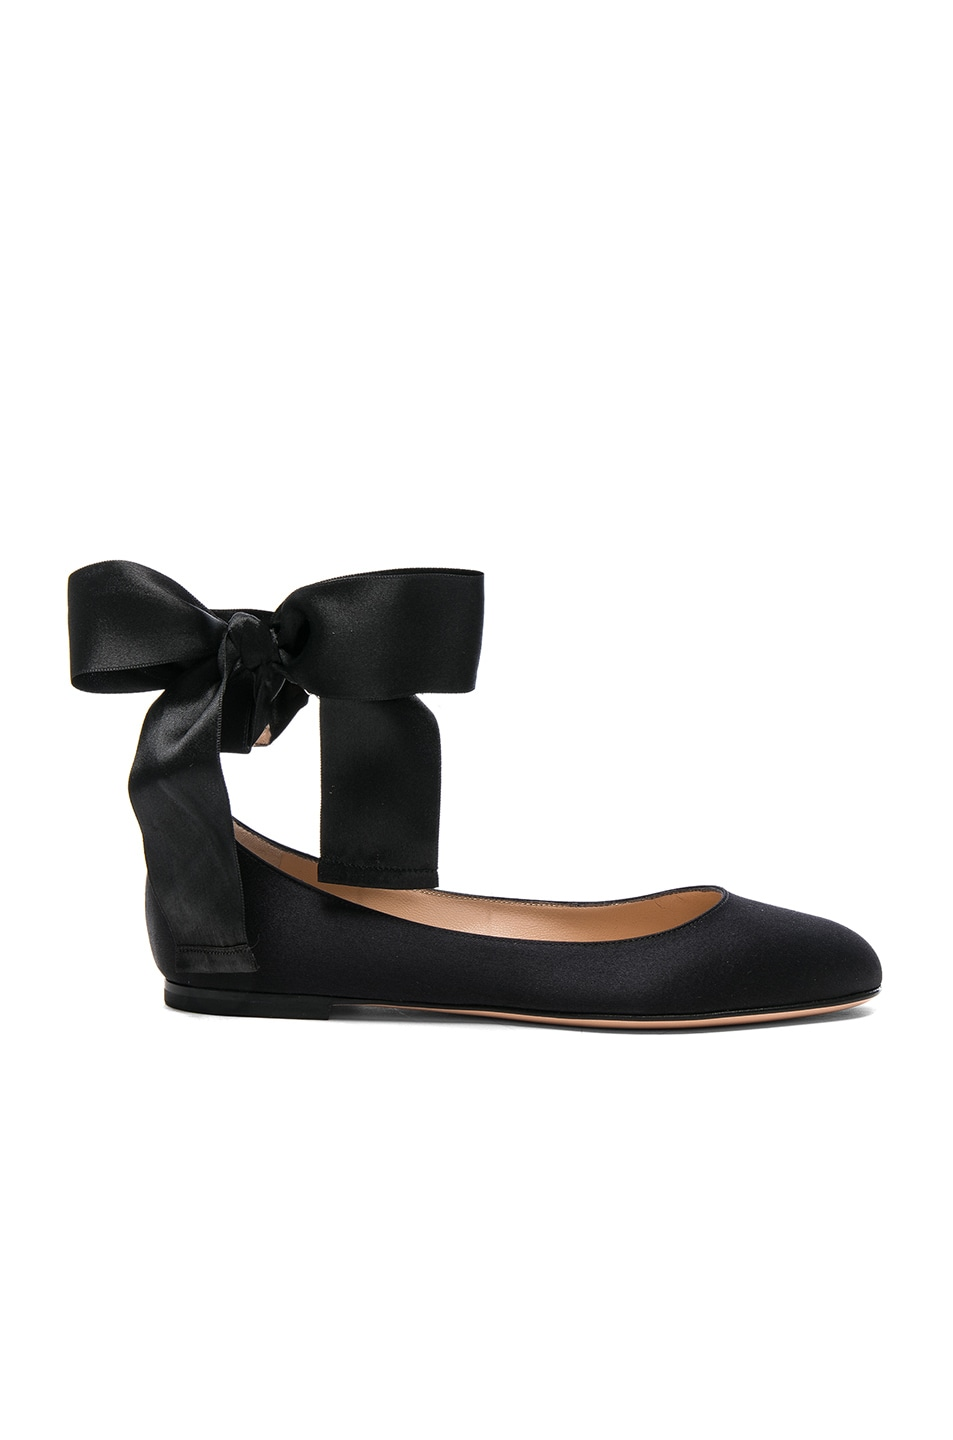 Image 1 of Gianvito Rossi Satin Ankle Tie Flats in Black